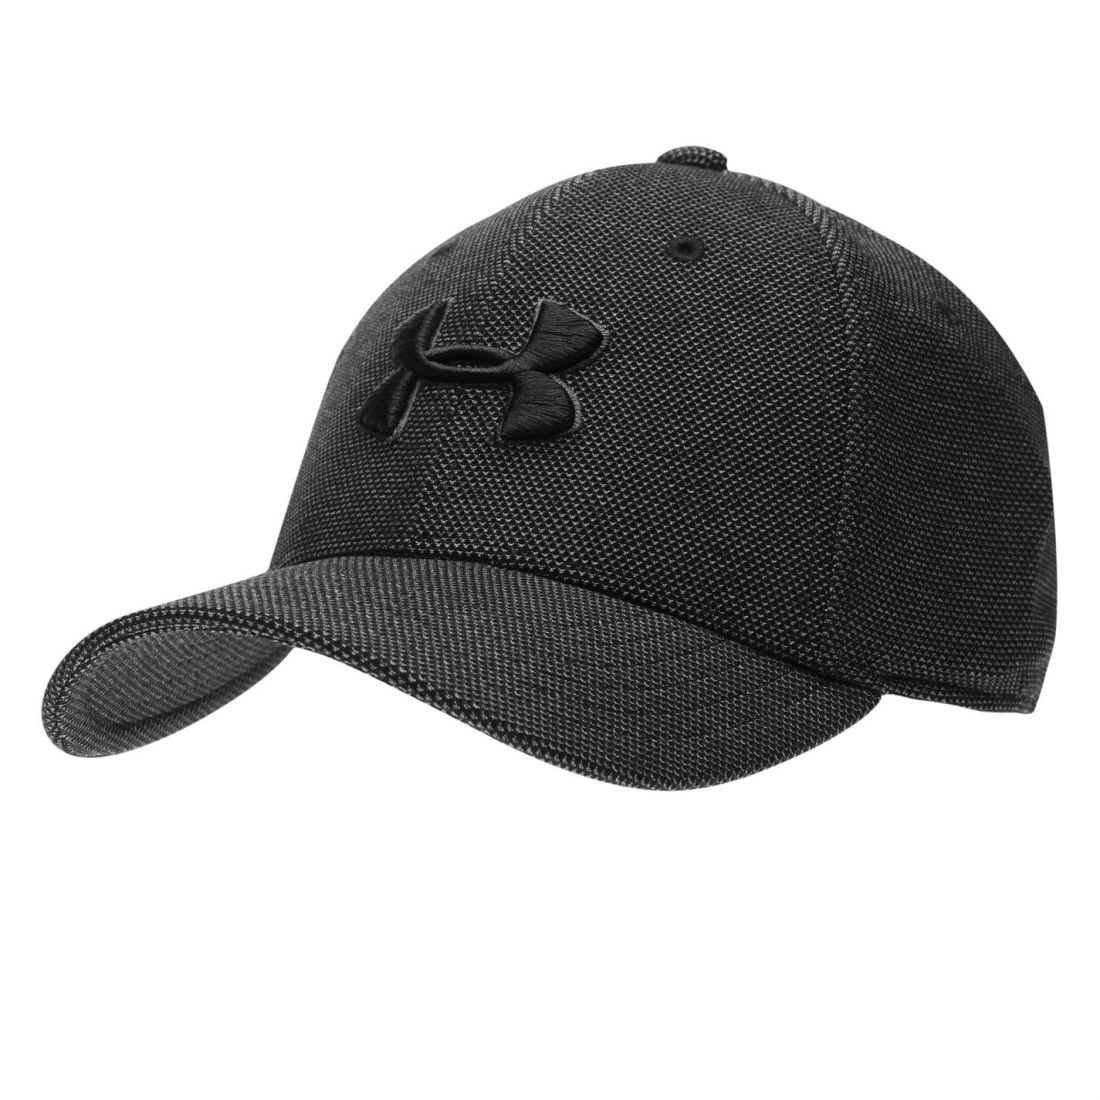 Image is loading Under-Armour-Kids-Boys-Heathered-Blitzing-Cap-Junior- 0a3a5a0acd54